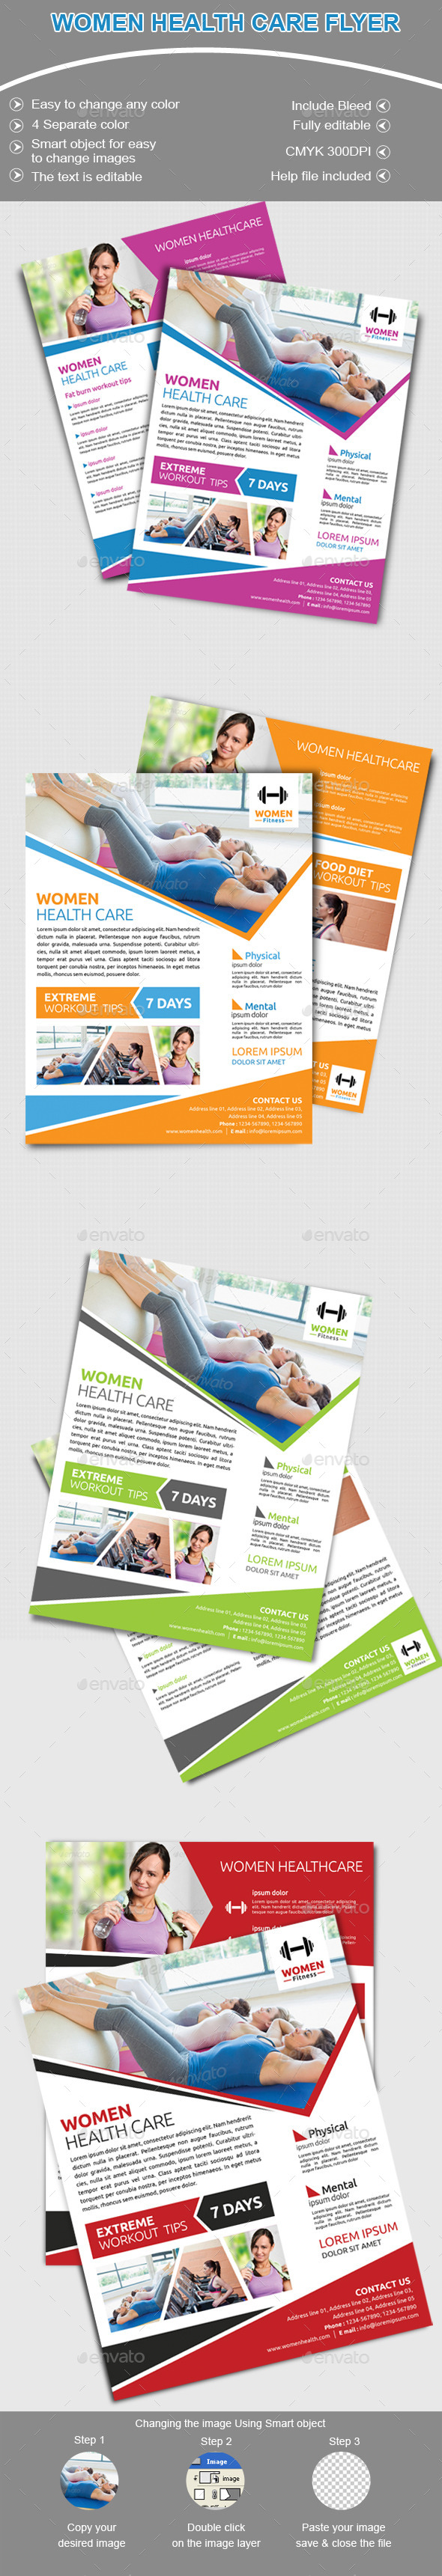 Women Health Care Club Flyer - Flyers Print Templates